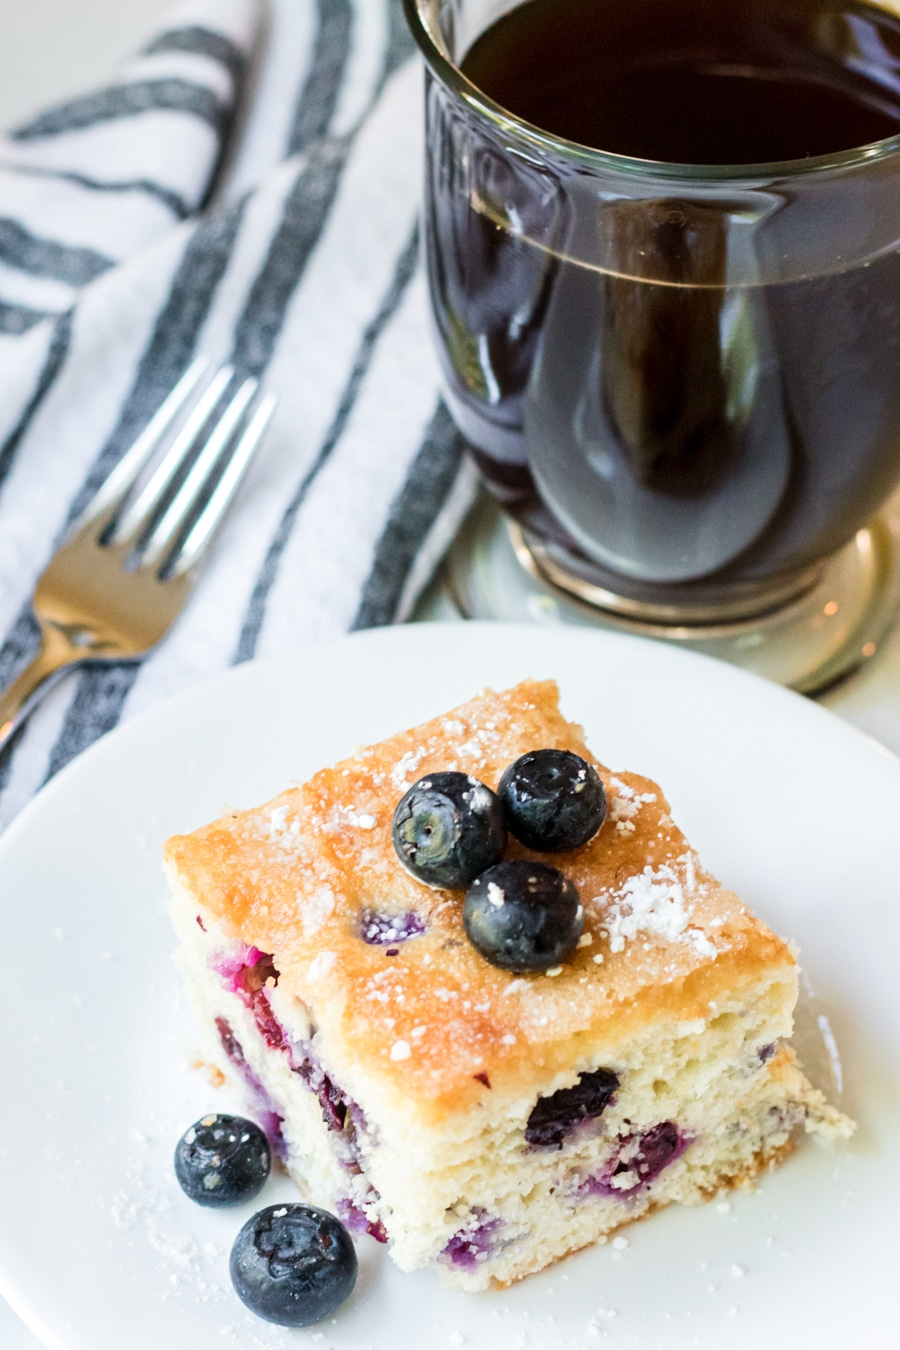 blueberry cake square piece on plate